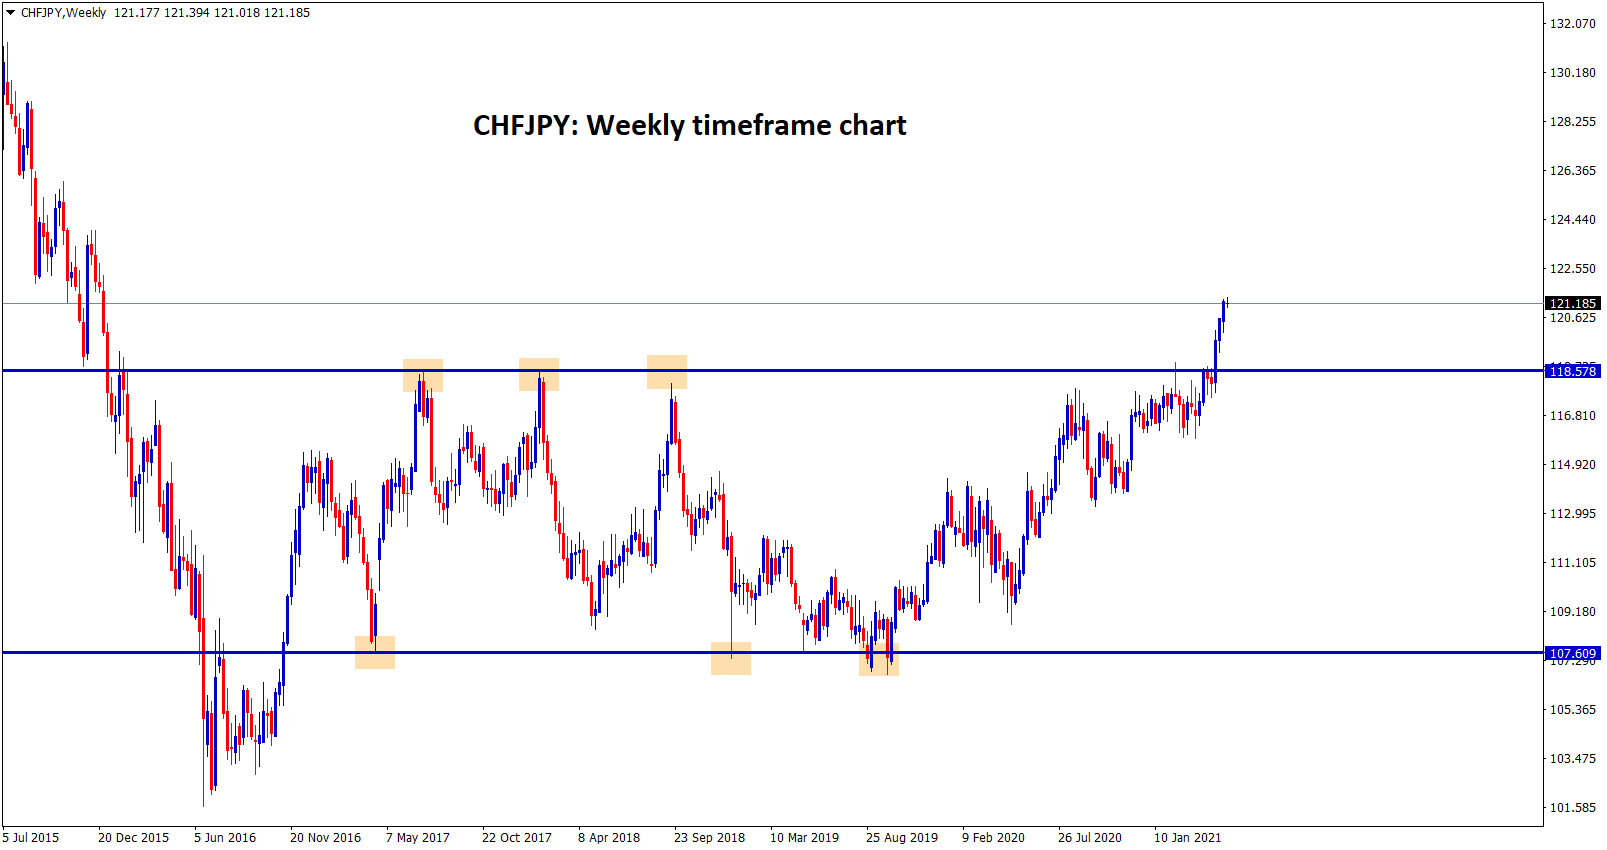 CHFJPY broken the strong resistance after 4 years and then starts to fly up.